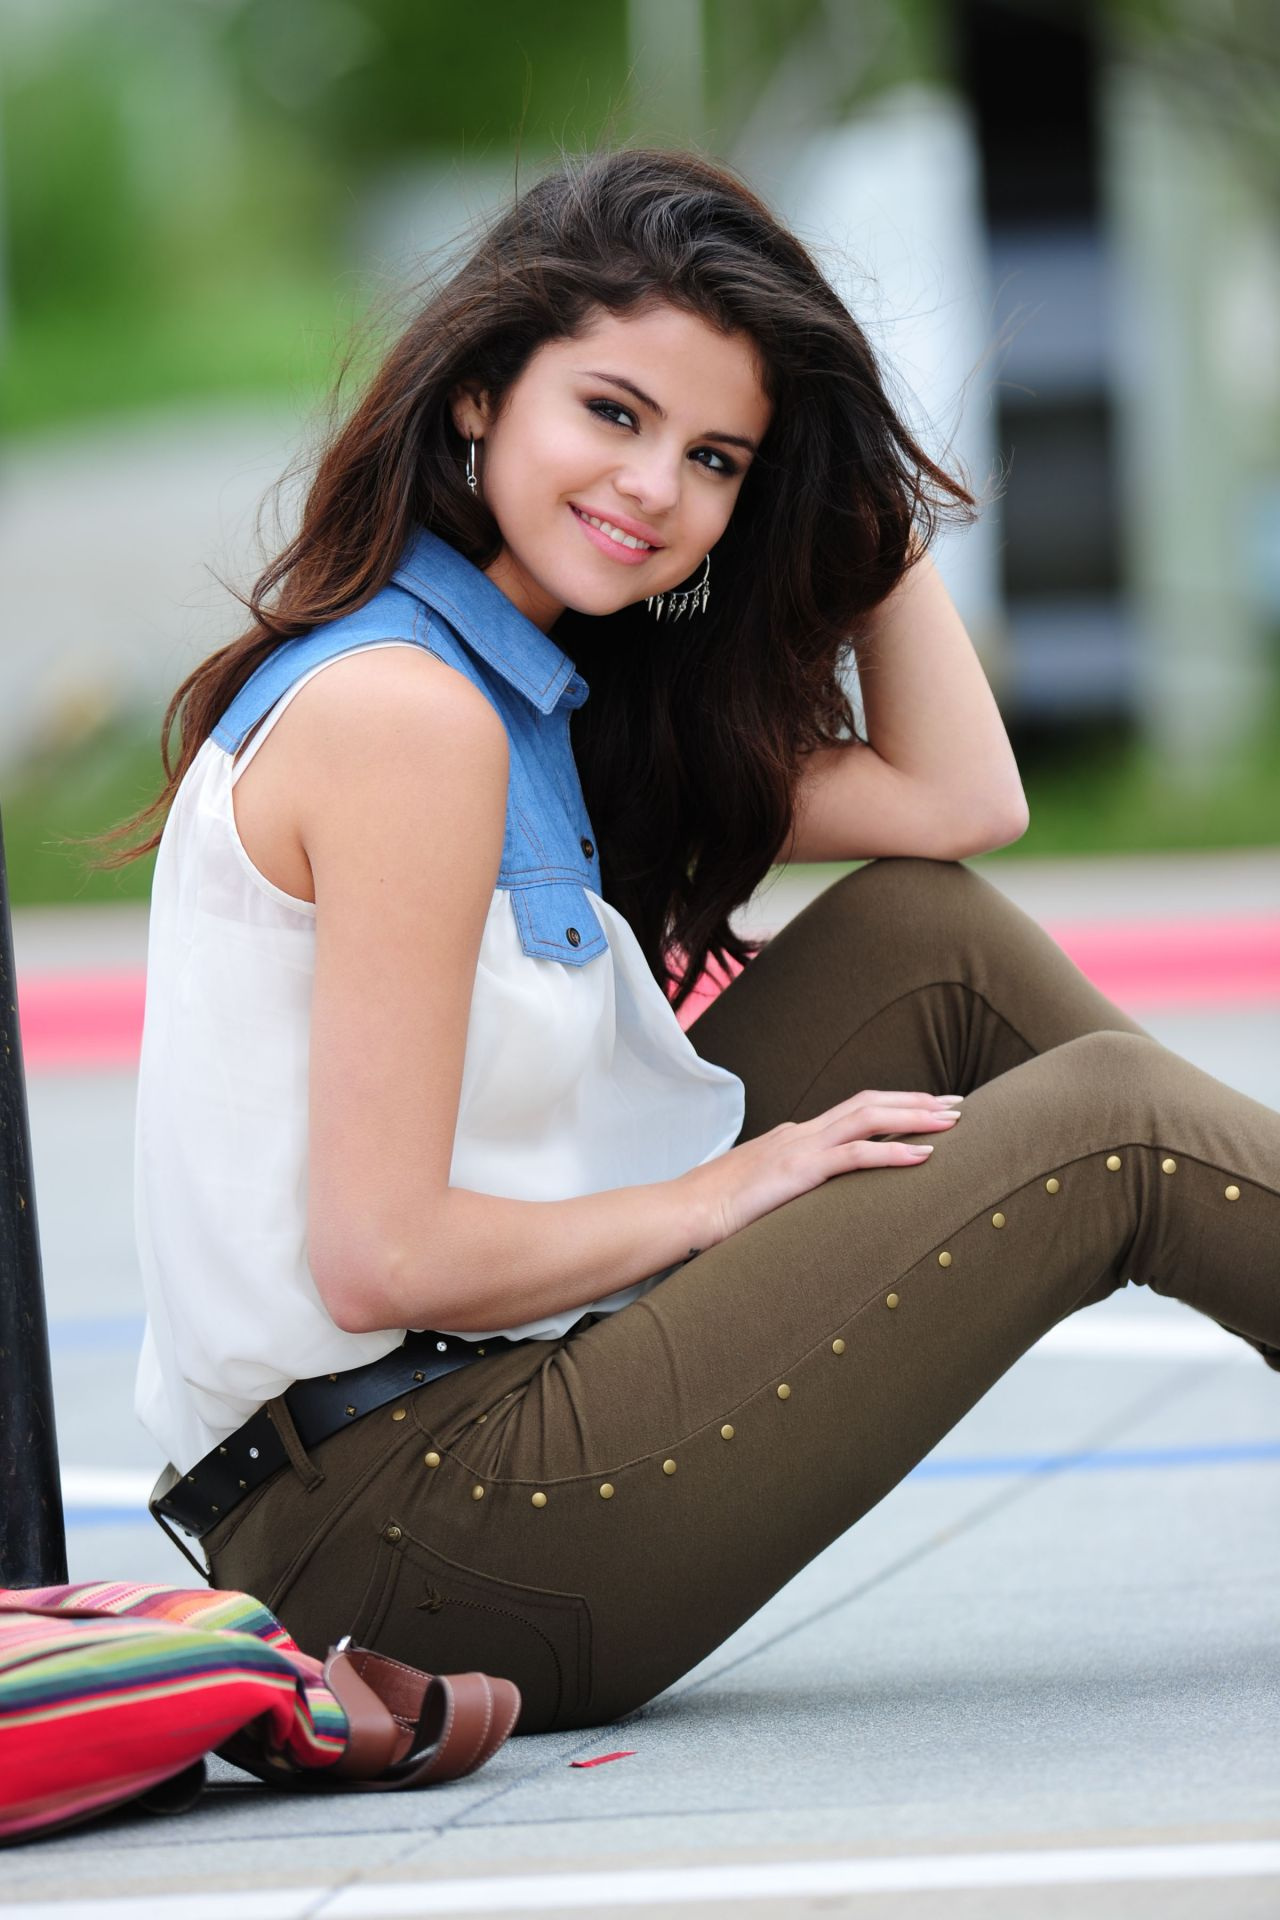 Selena Gomez Photoshoot - 177 Photos From Dream Out Loud ...